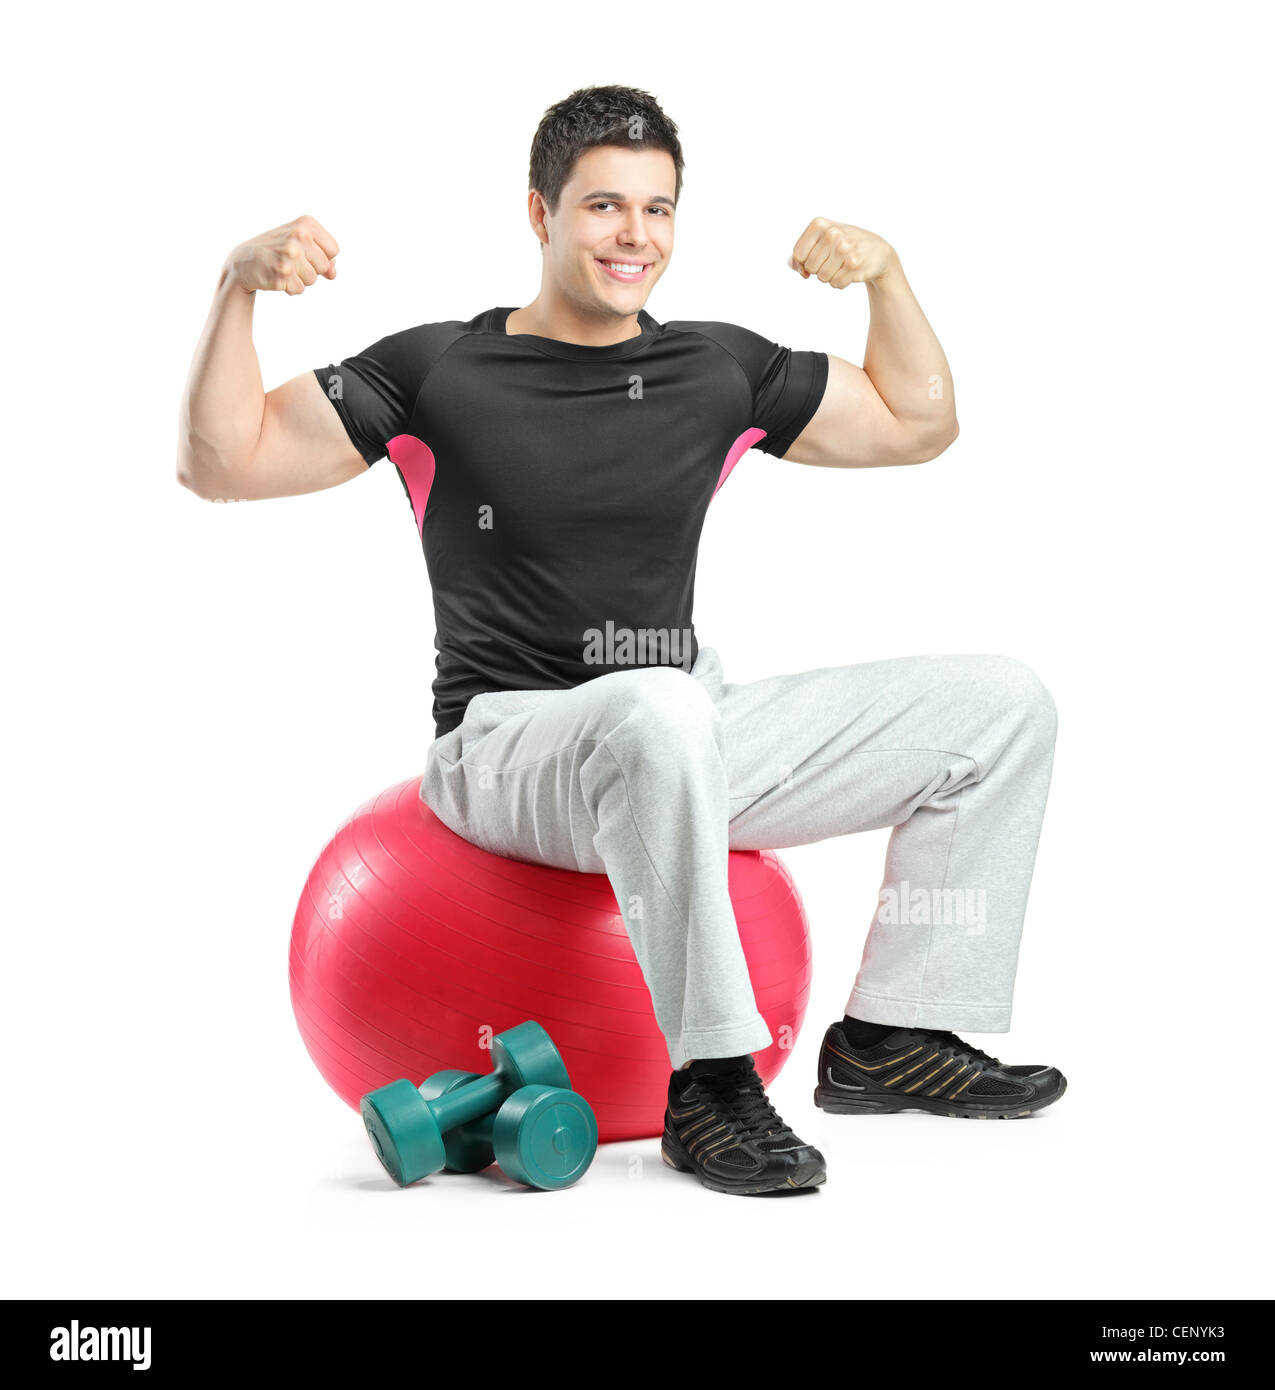 A young bodybuilder gesturing and seated on a pilates ball isolated against white background - Stock Image